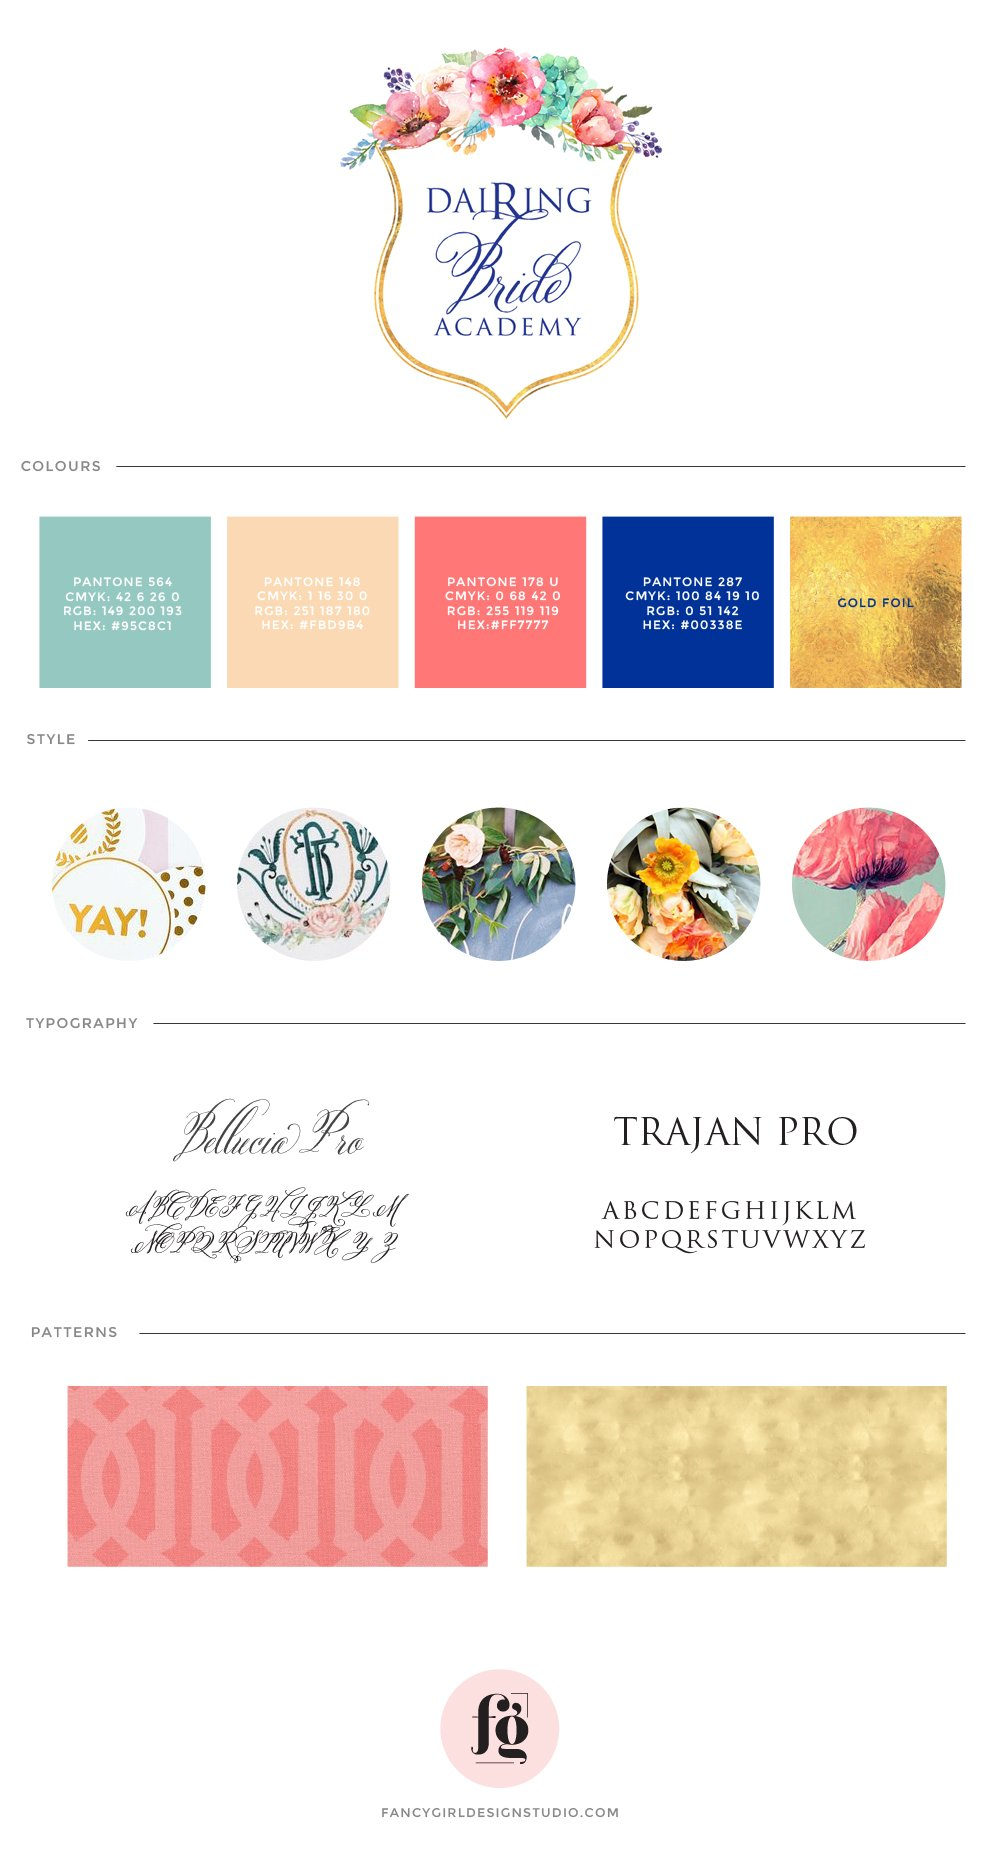 brand board for Dairing  Bride Academy by Fancy Girl Design Studio